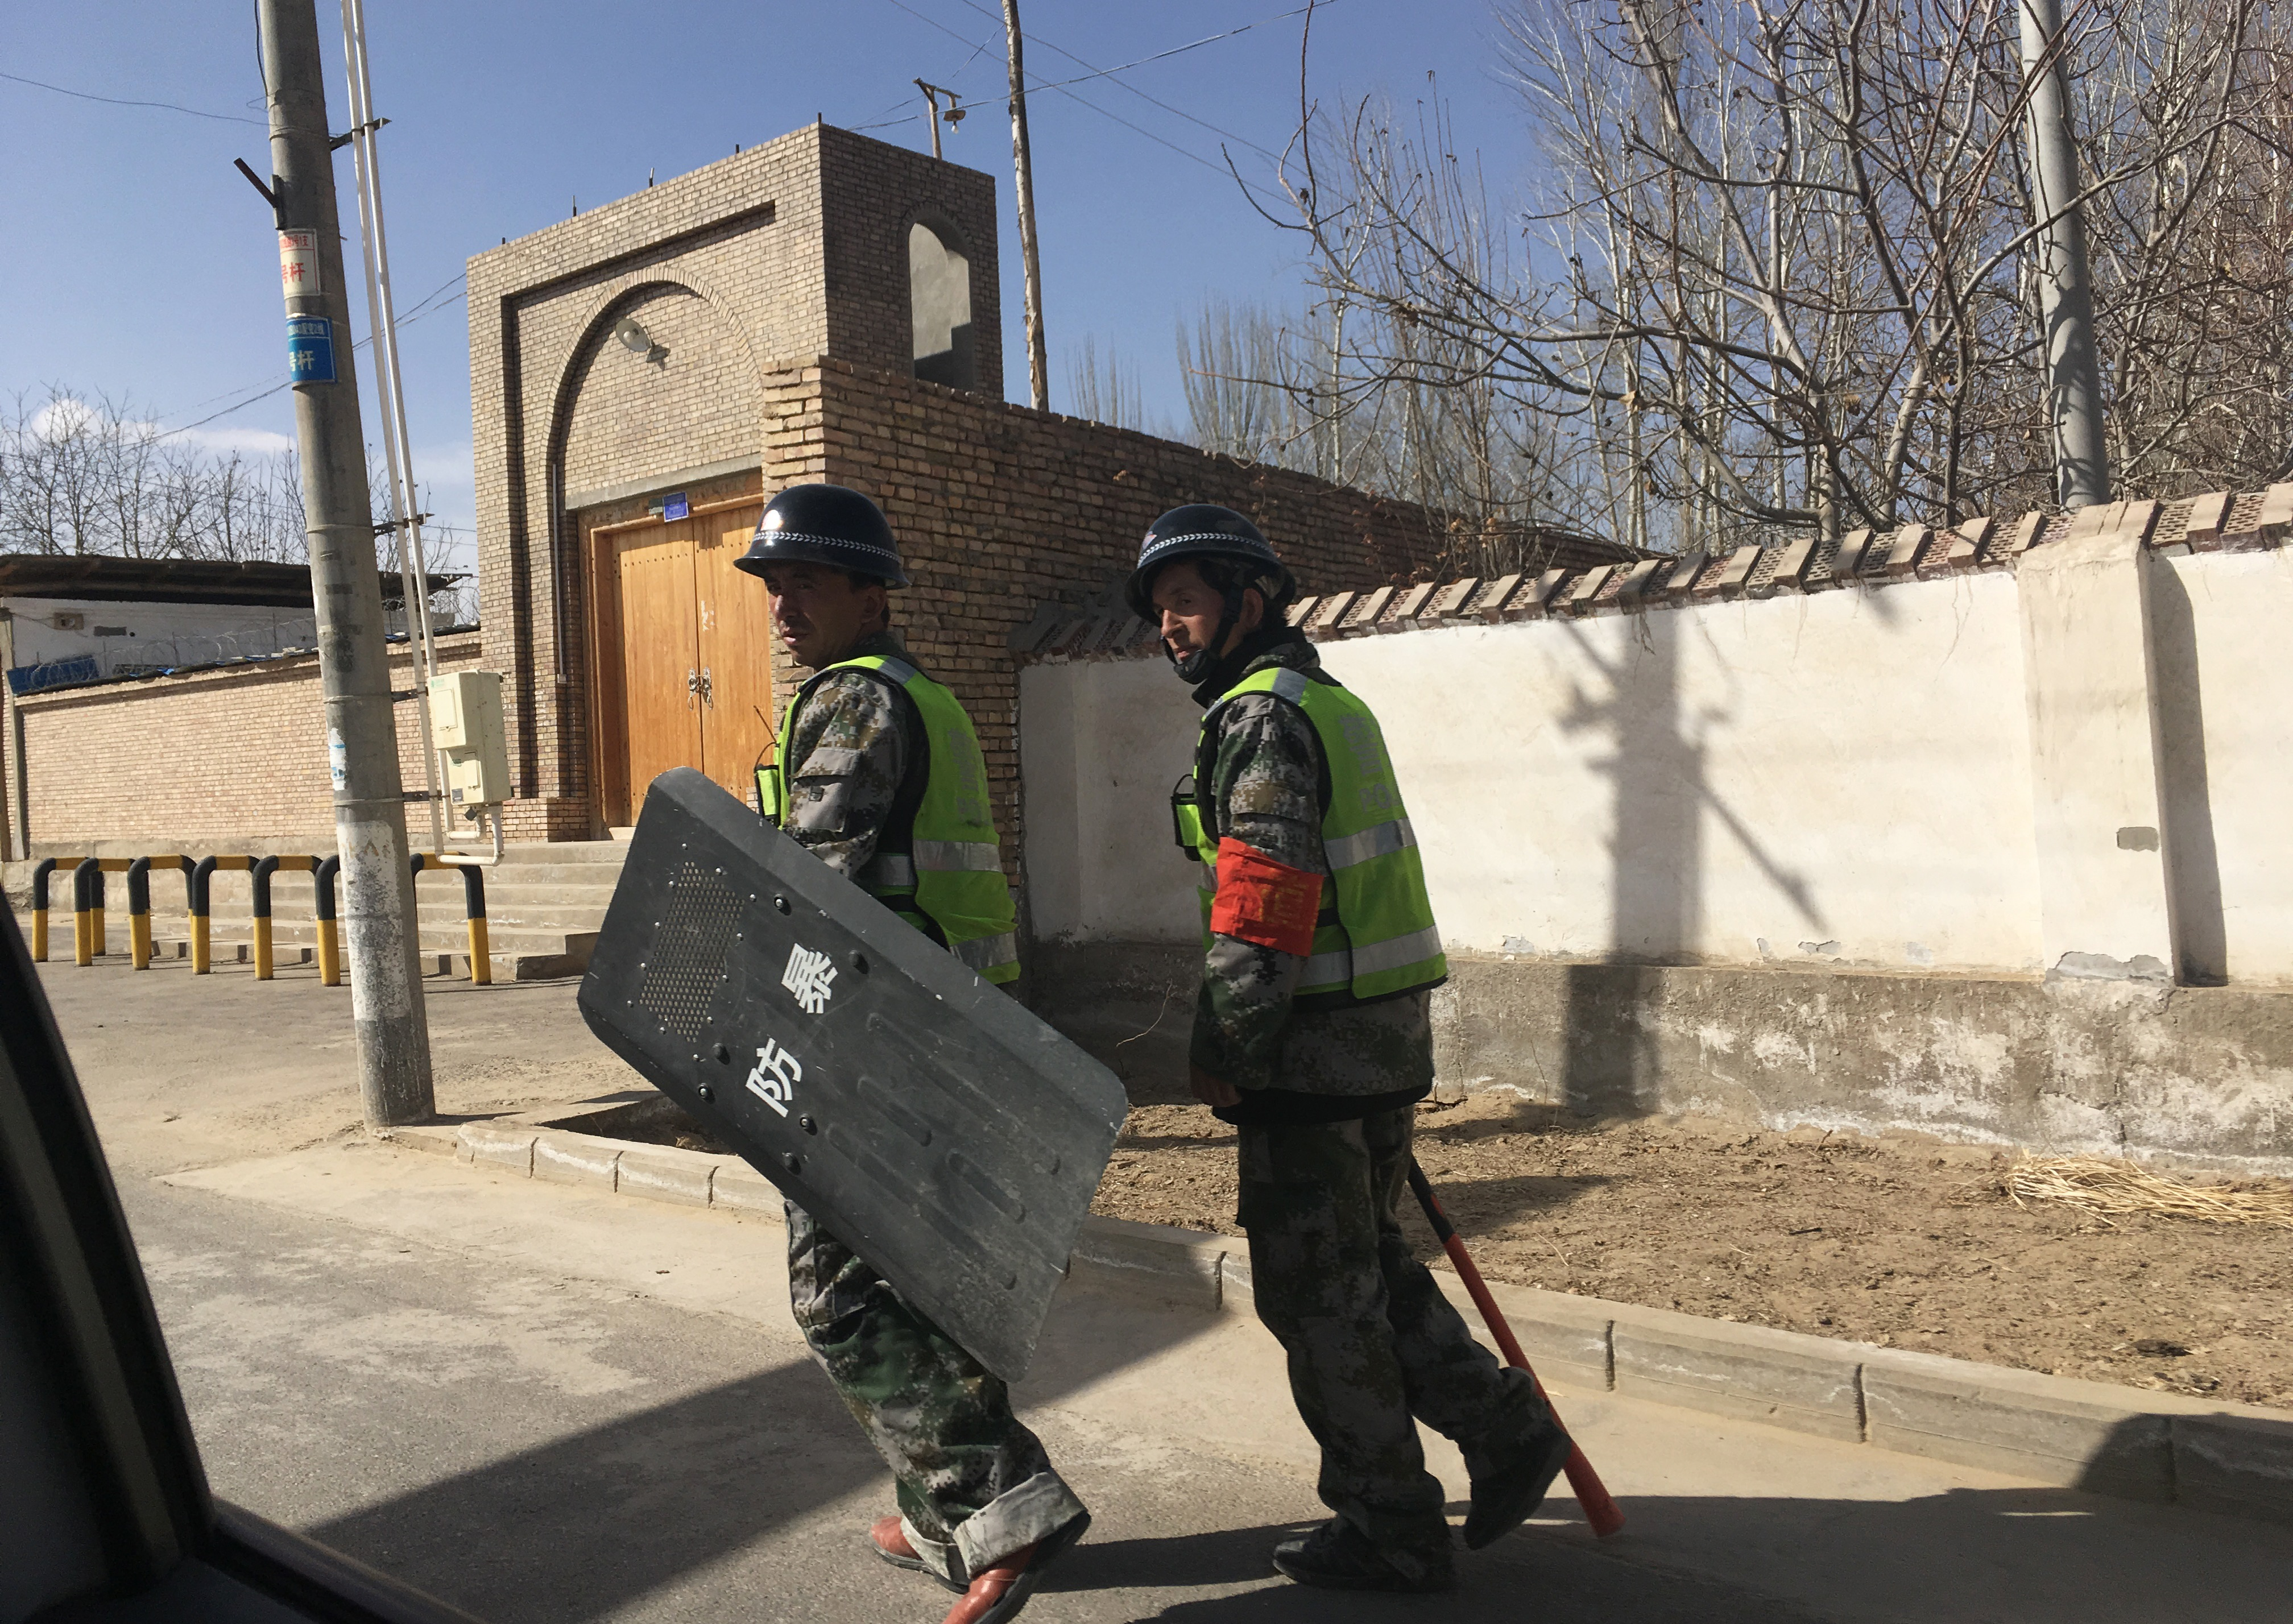 Police patrol a village in Hotan prefecture, in China's western Xinjiang region on Feb. 17, 2018.